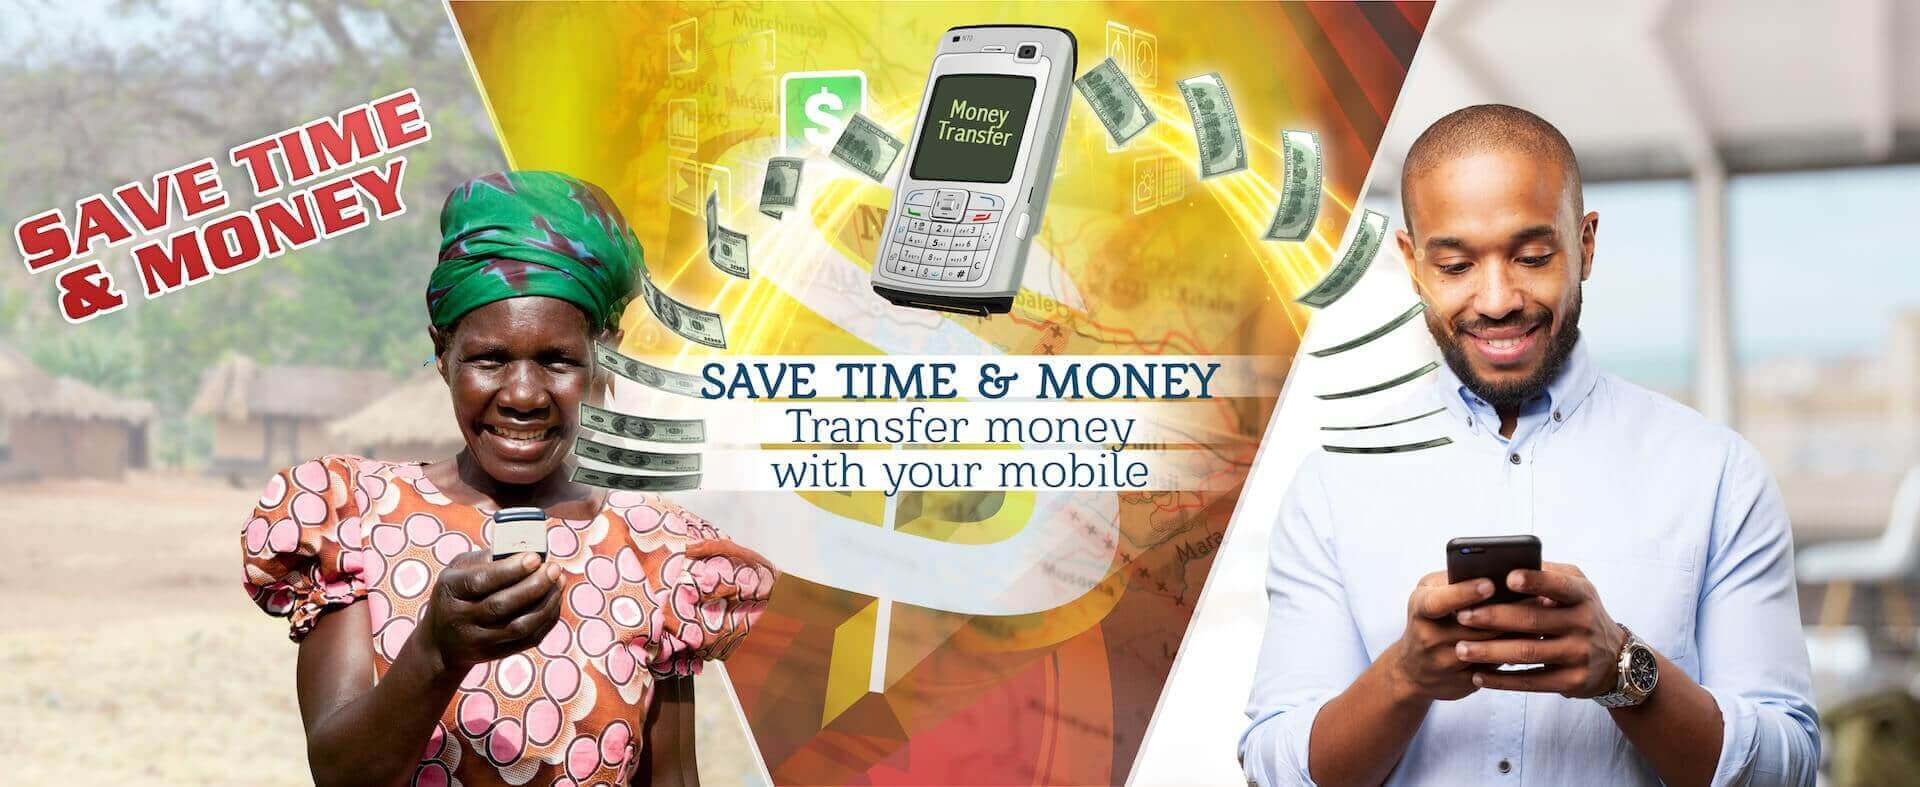 USSD Based Mobile Payment - Hypermedia Systems